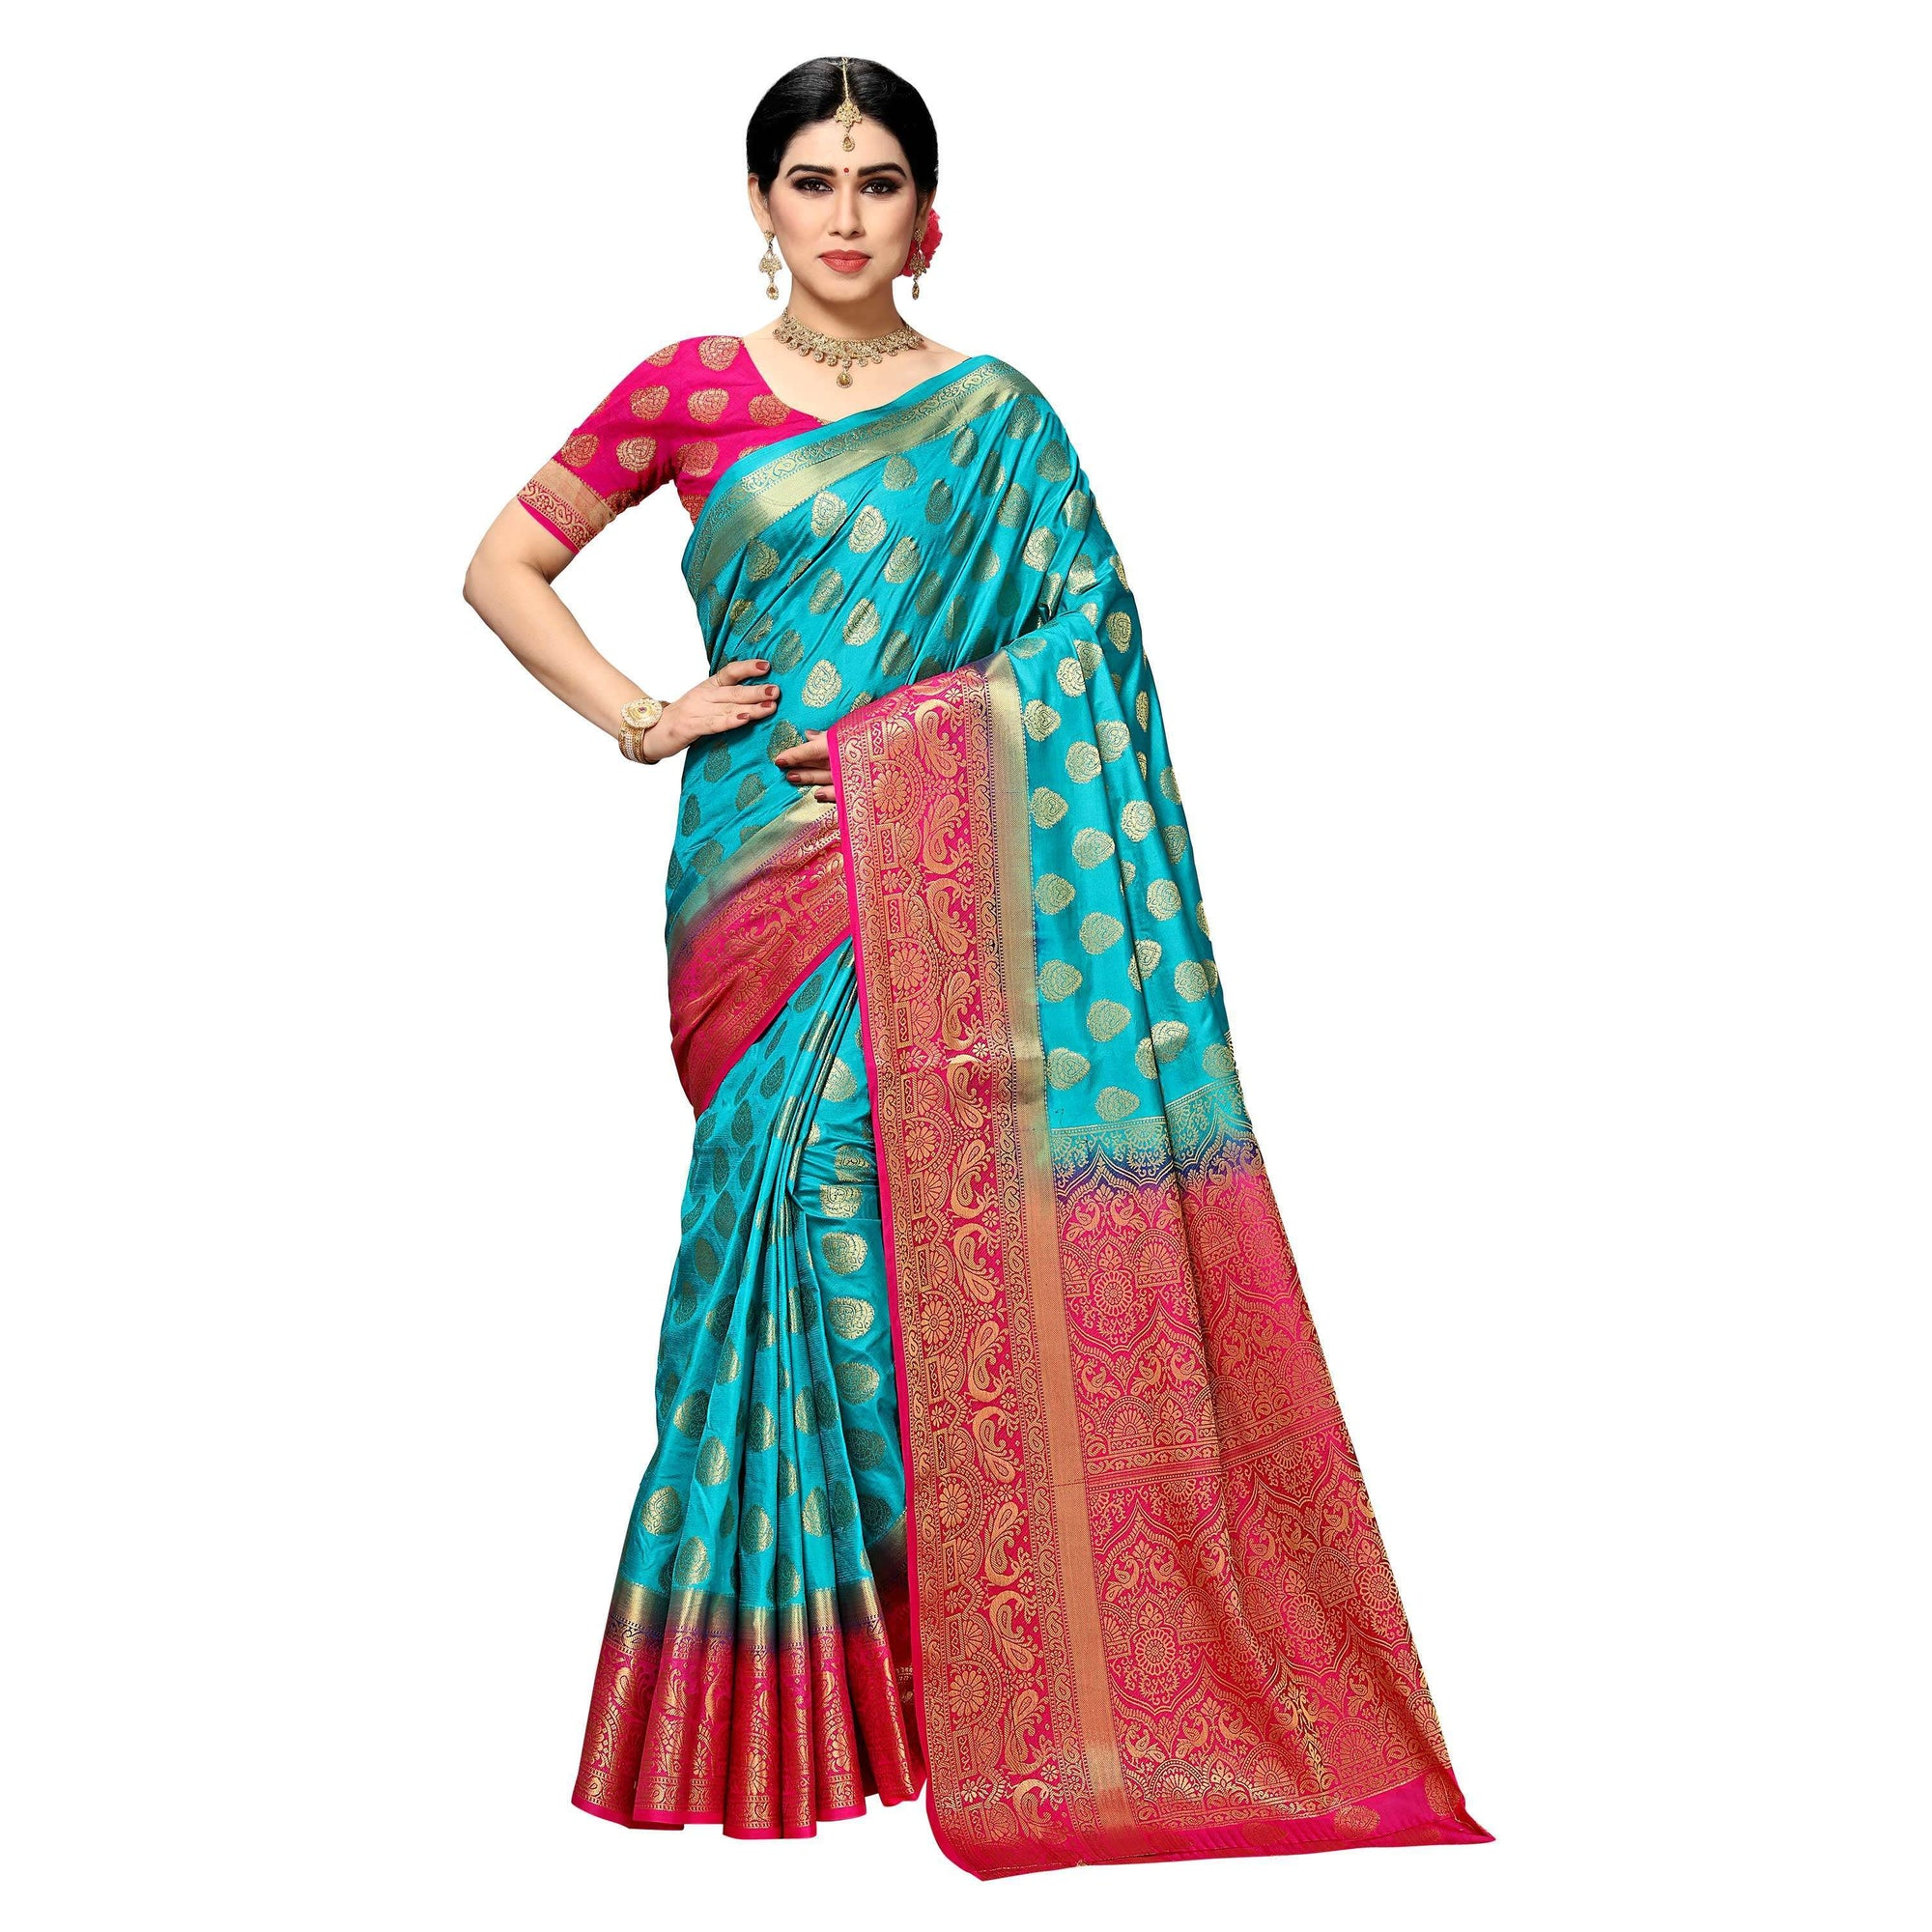 arars Women's kanchipuram kanjivaram pattu style art silk saree with blouse (450,safair)